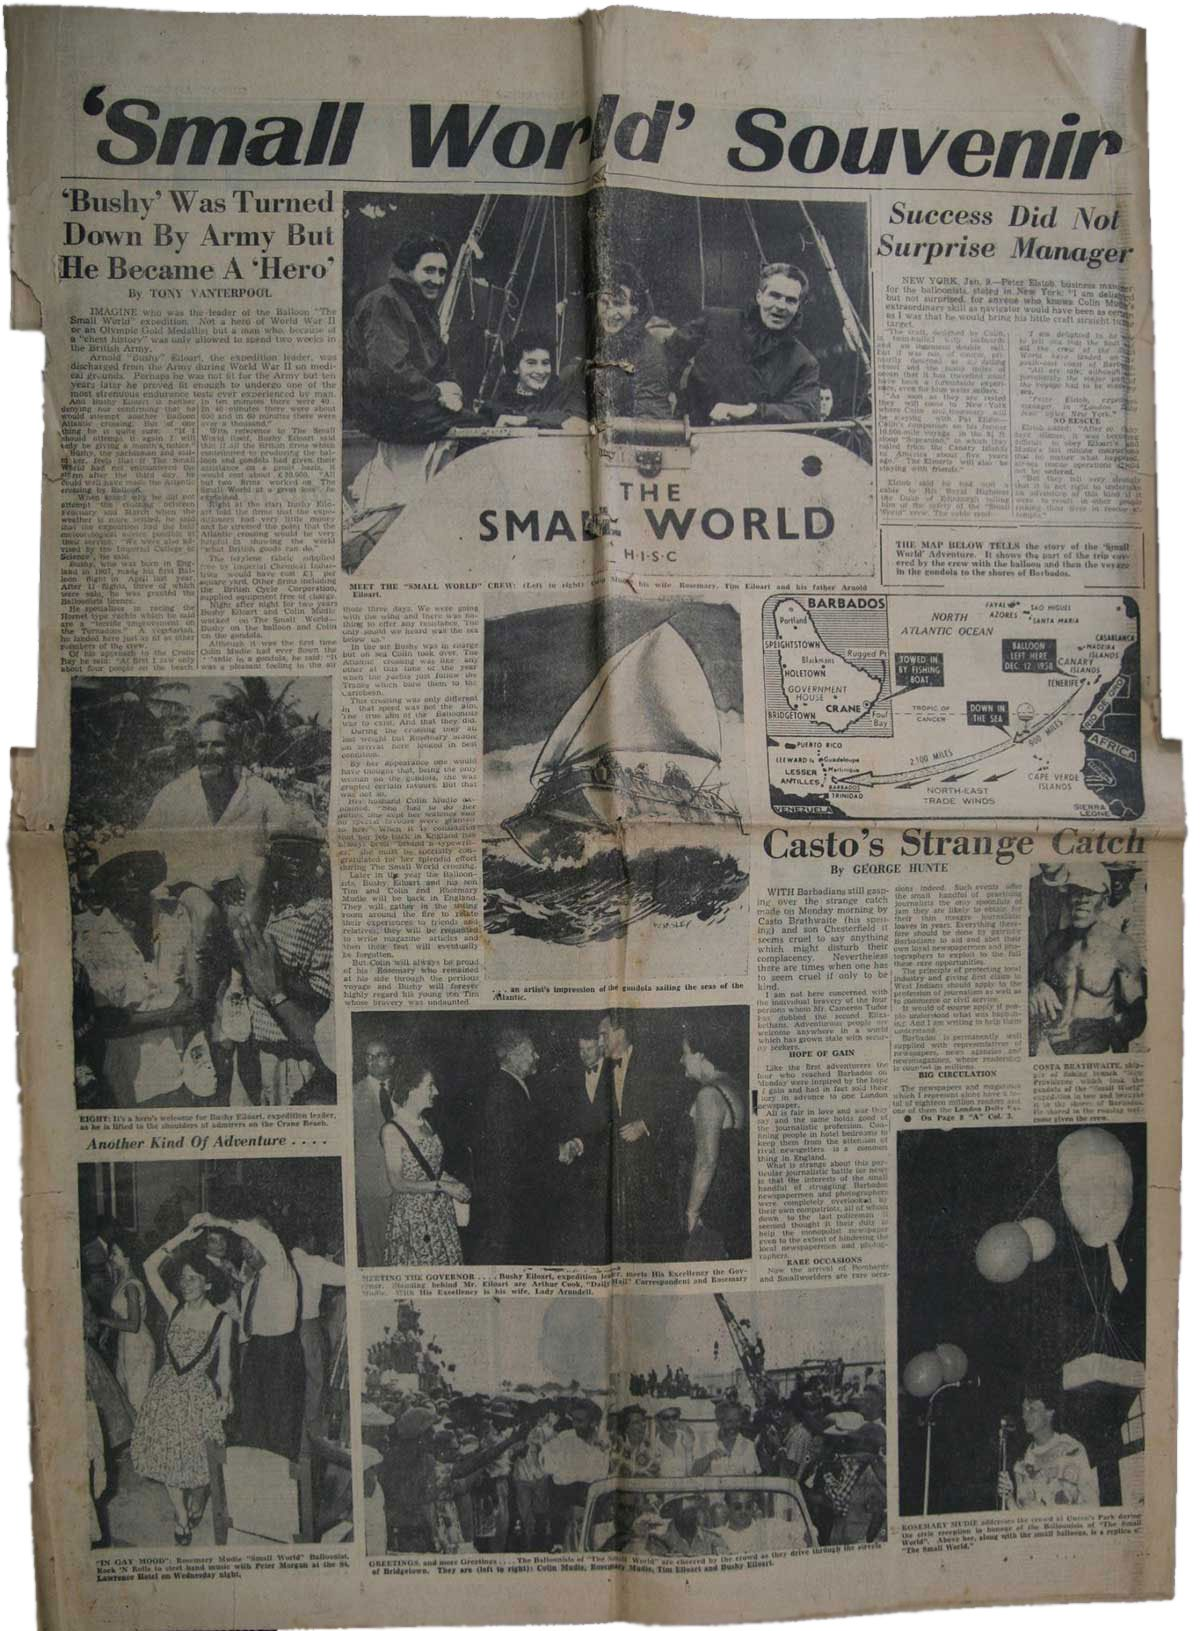 1959 Newspaper Cutting - Small World Souvenir